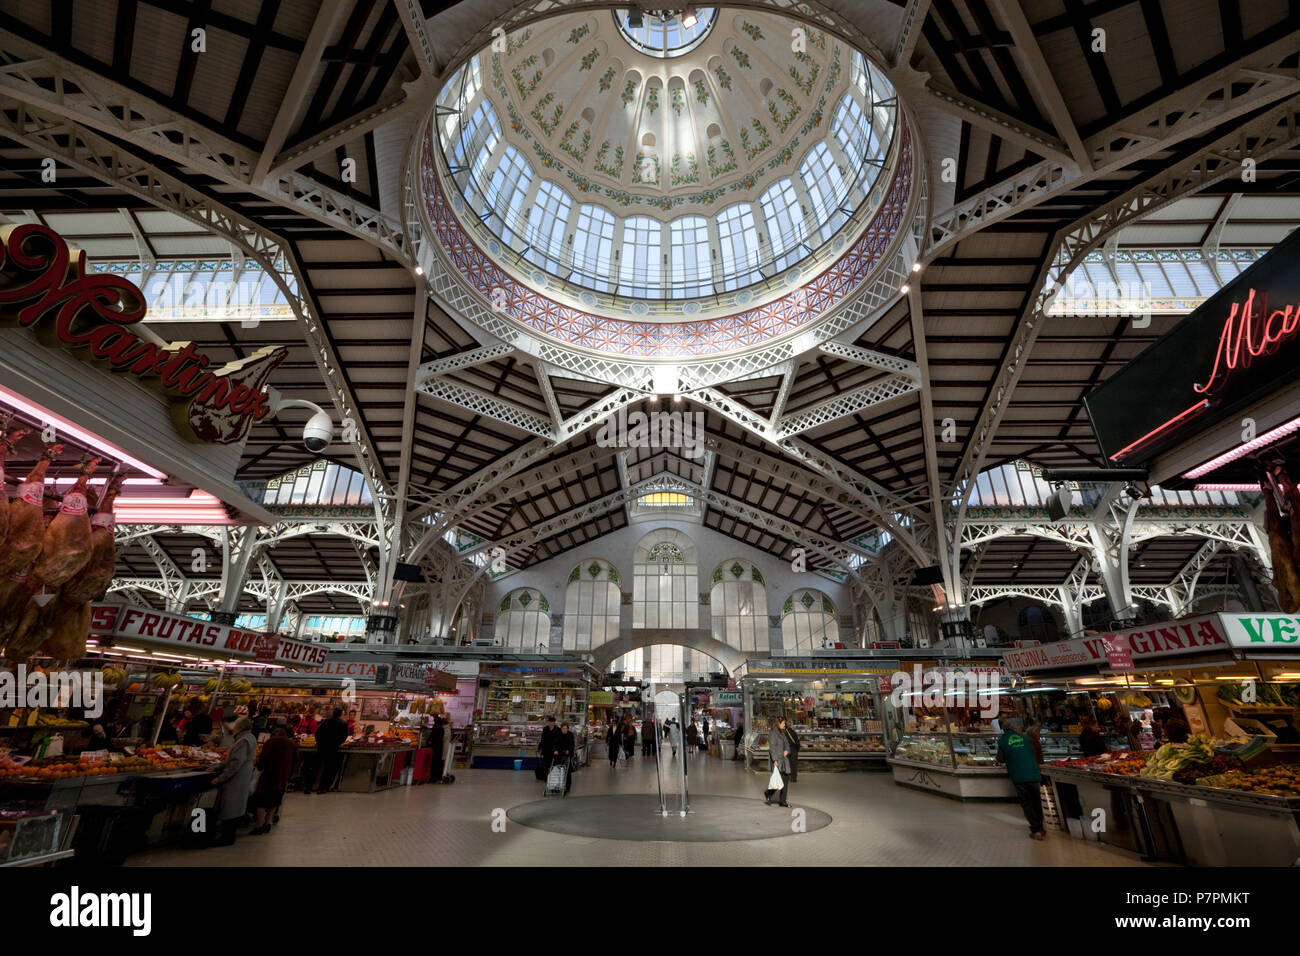 Interior of the Mercato Centrale, built in 1914 - Stock Image